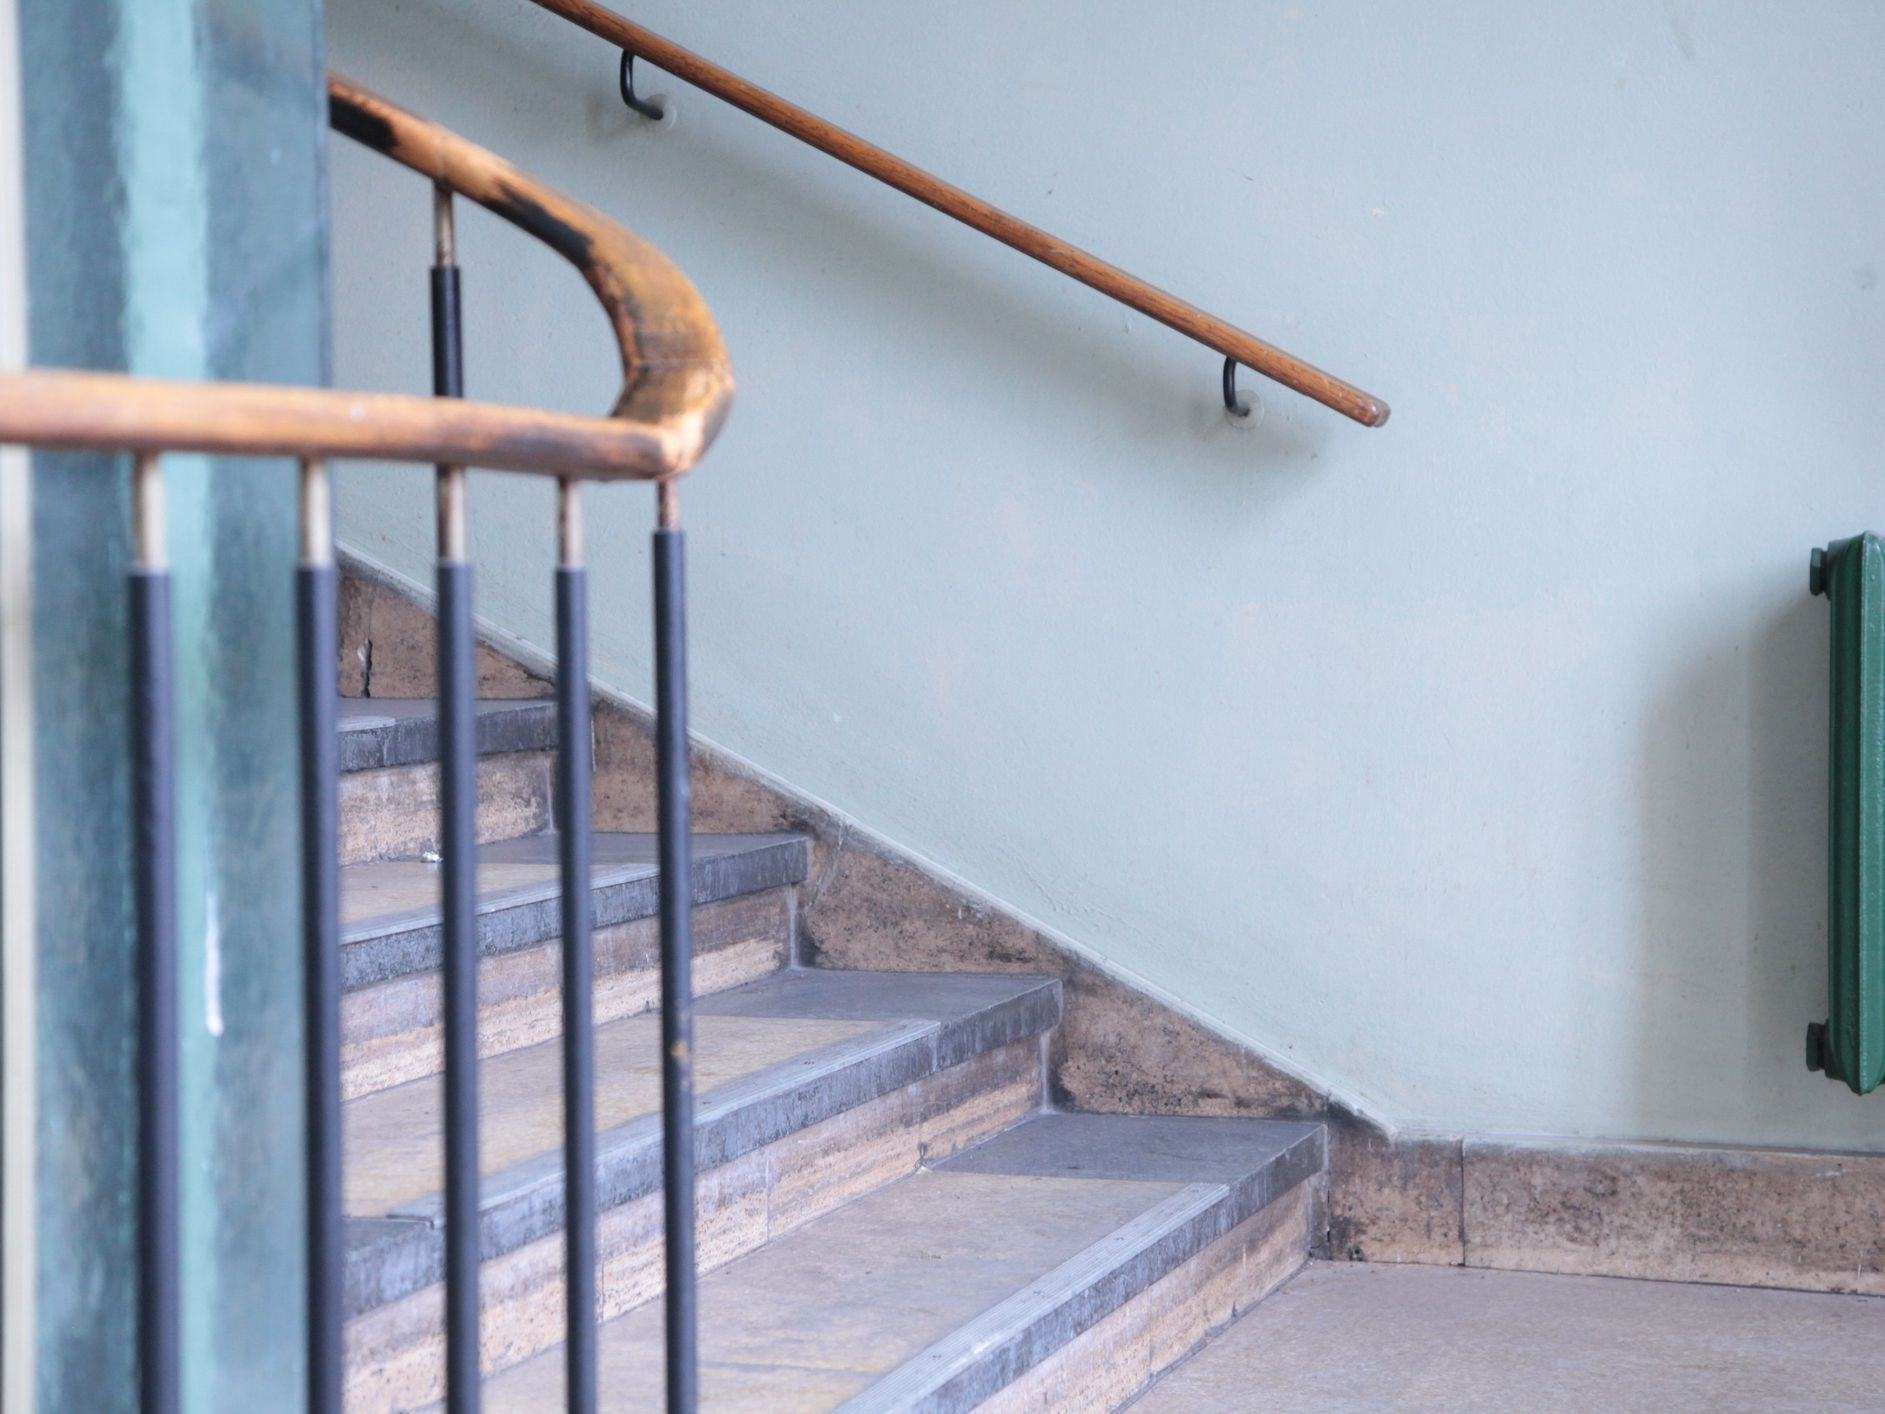 Stair Railing Building Code Summarized | Attaching Handrail To Post | Spindles | Newel Post | Stair Handrail | Baluster | Rim Joist